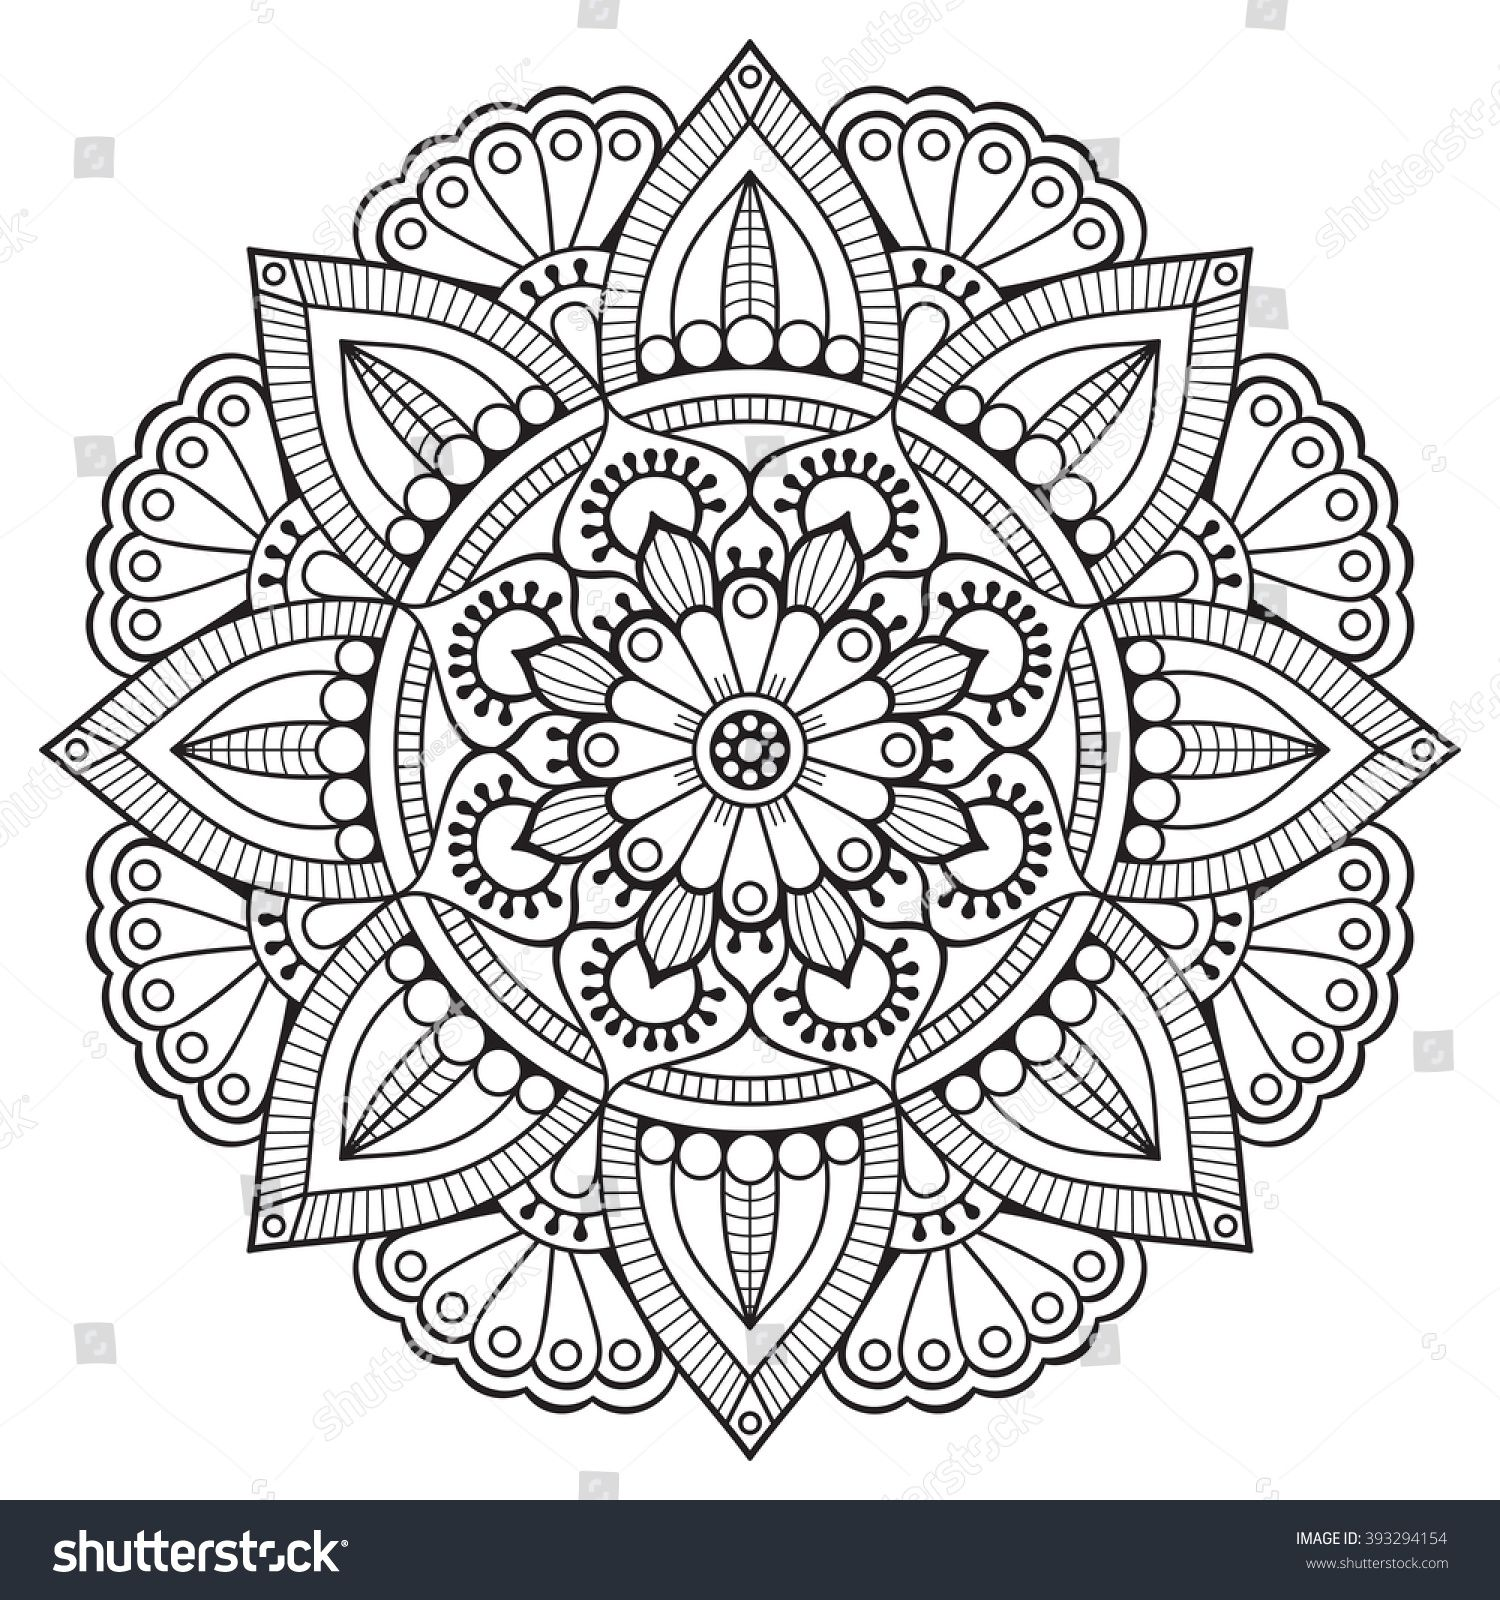 Flower Mandalas Vintage Decorative Elements Oriental Pattern Vector Illustration Islam Arabic In Mandala Malvorlagen Muster Zum Ausmalen Mandala Ausmalen